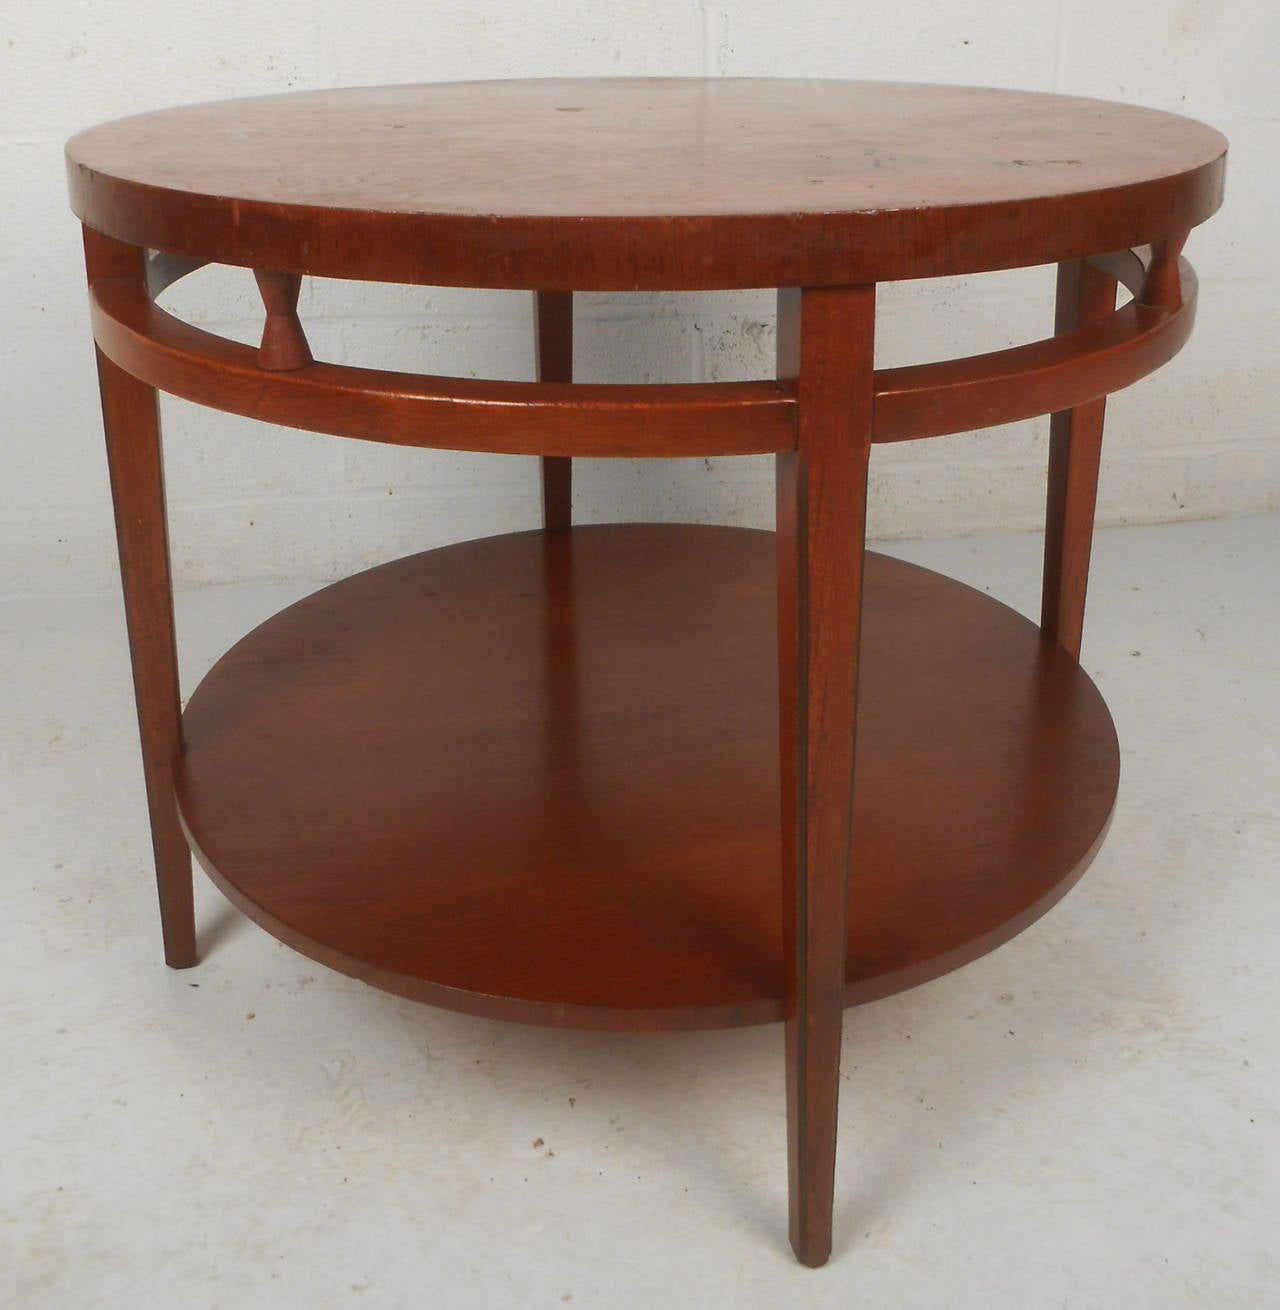 Midcentury lane style two tier round coffee table for sale for Round coffee tables for sale